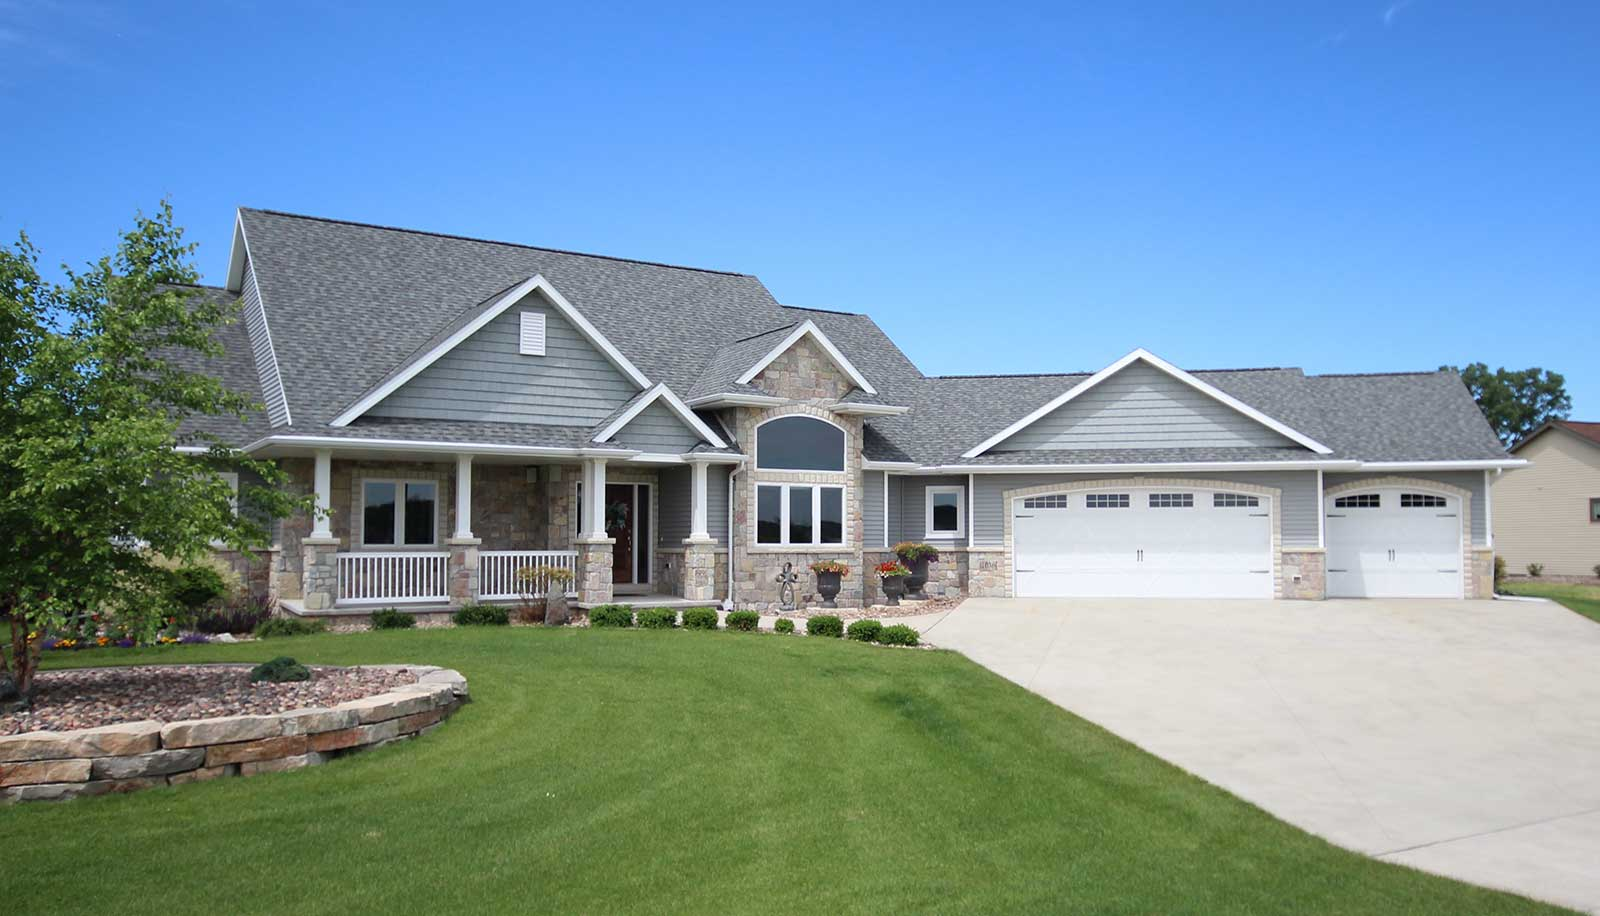 New portside builders home in fond du lac wisconsin for Home builders fond du lac wi